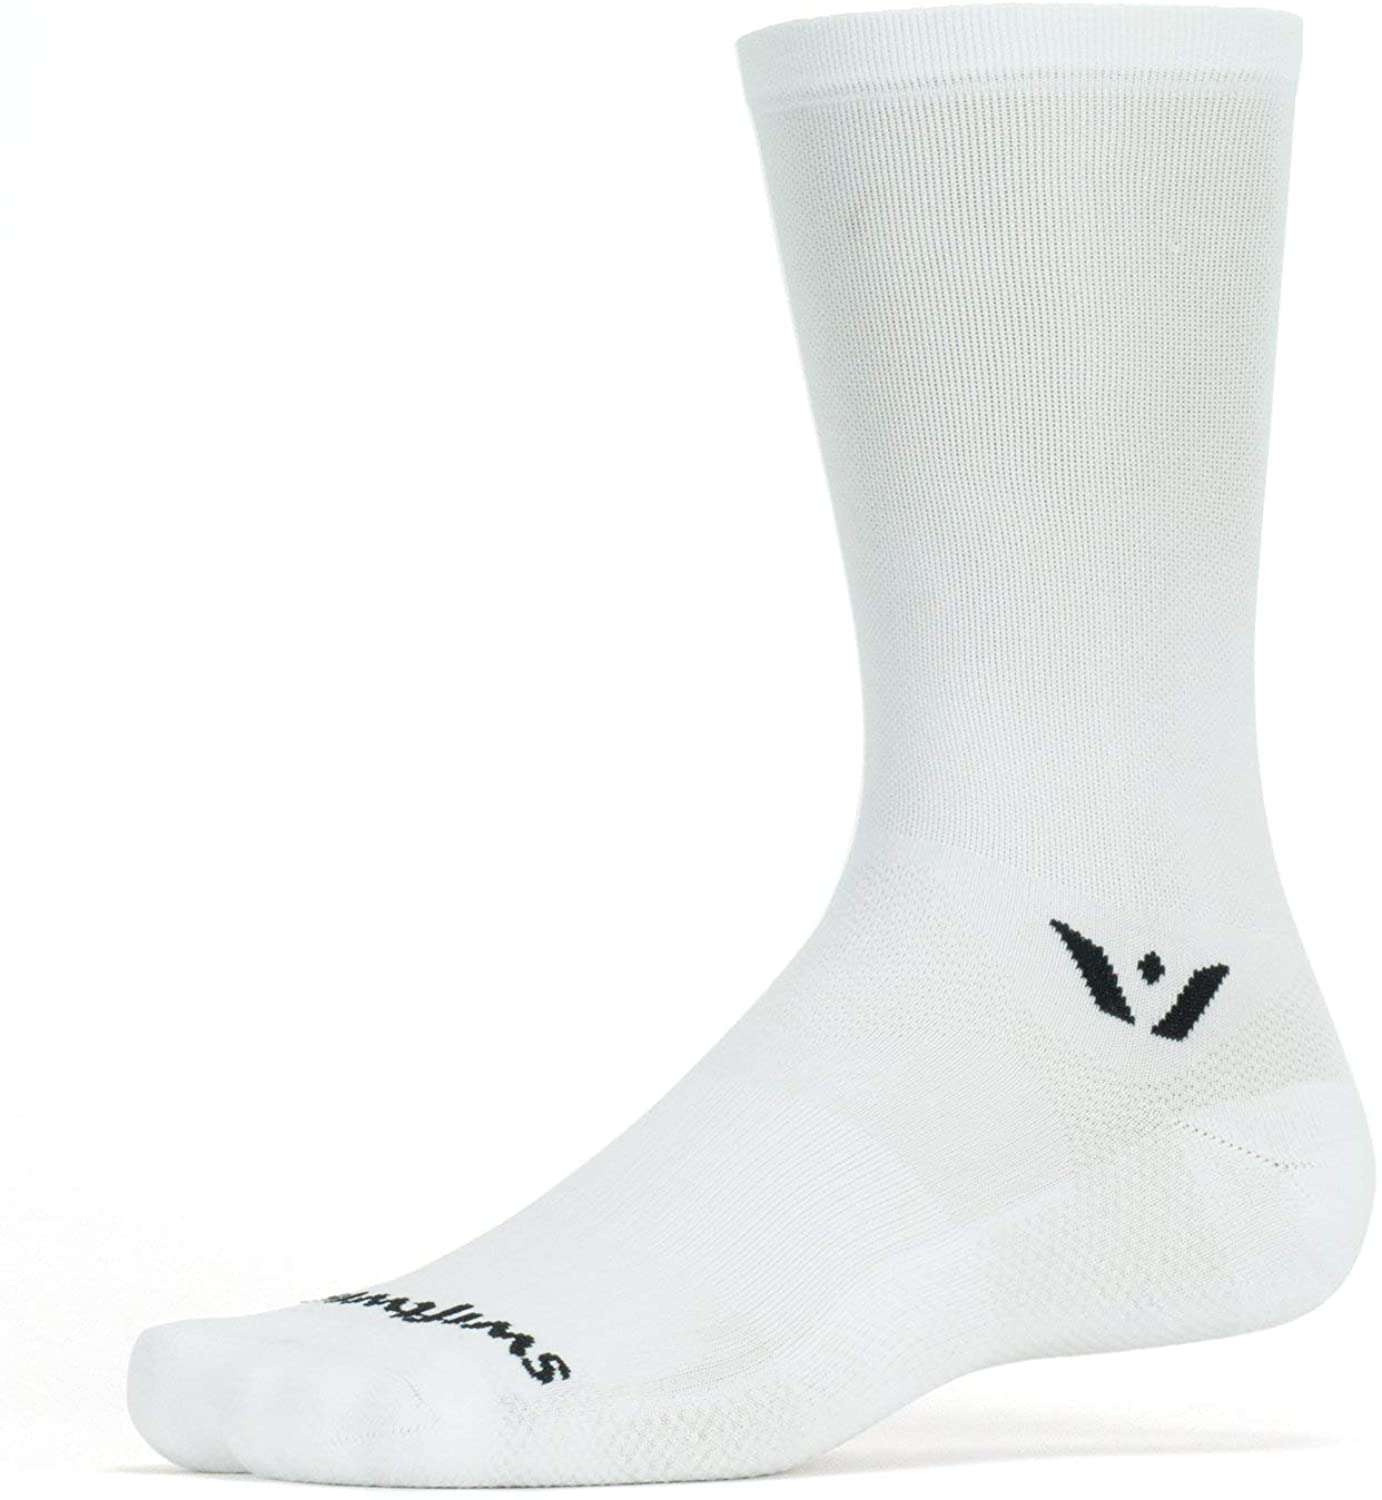 Swiftwick- ASPIRE SEVEN Cycling Socks, Firm Compression Fit, Tall Crew